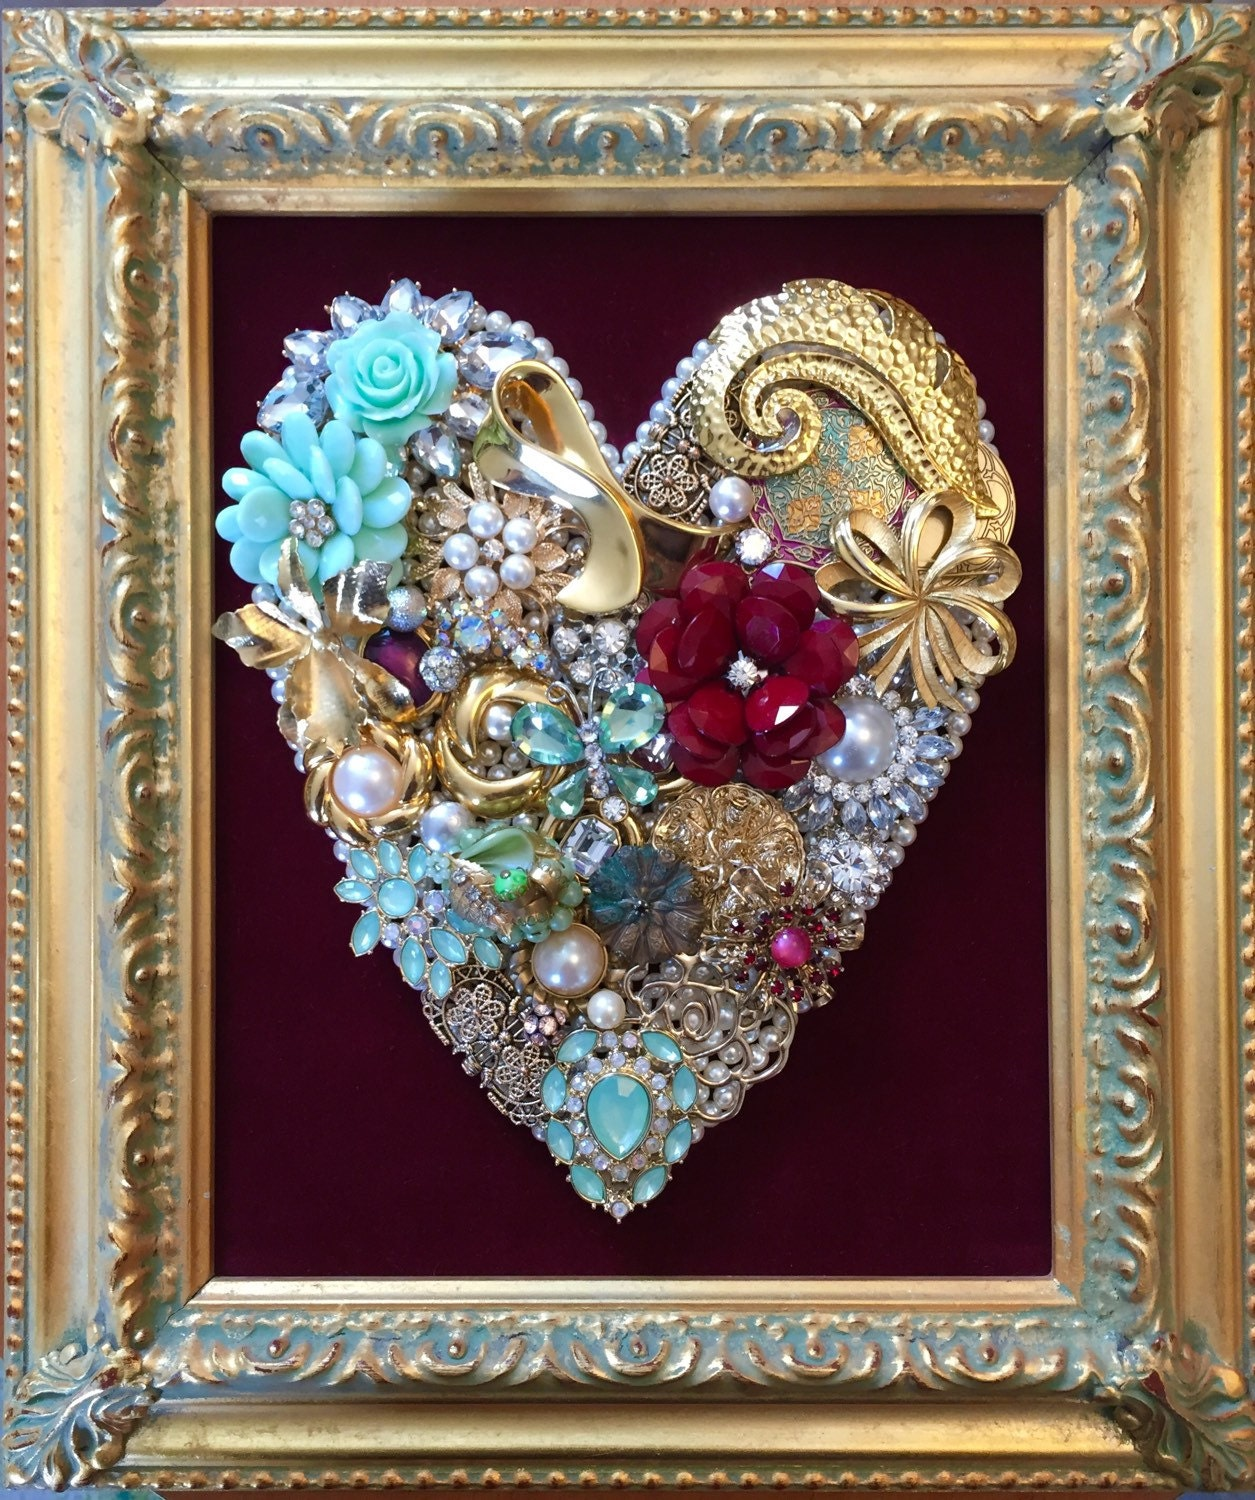 beautiful vintage jewelry framed art by upcycledassemblage